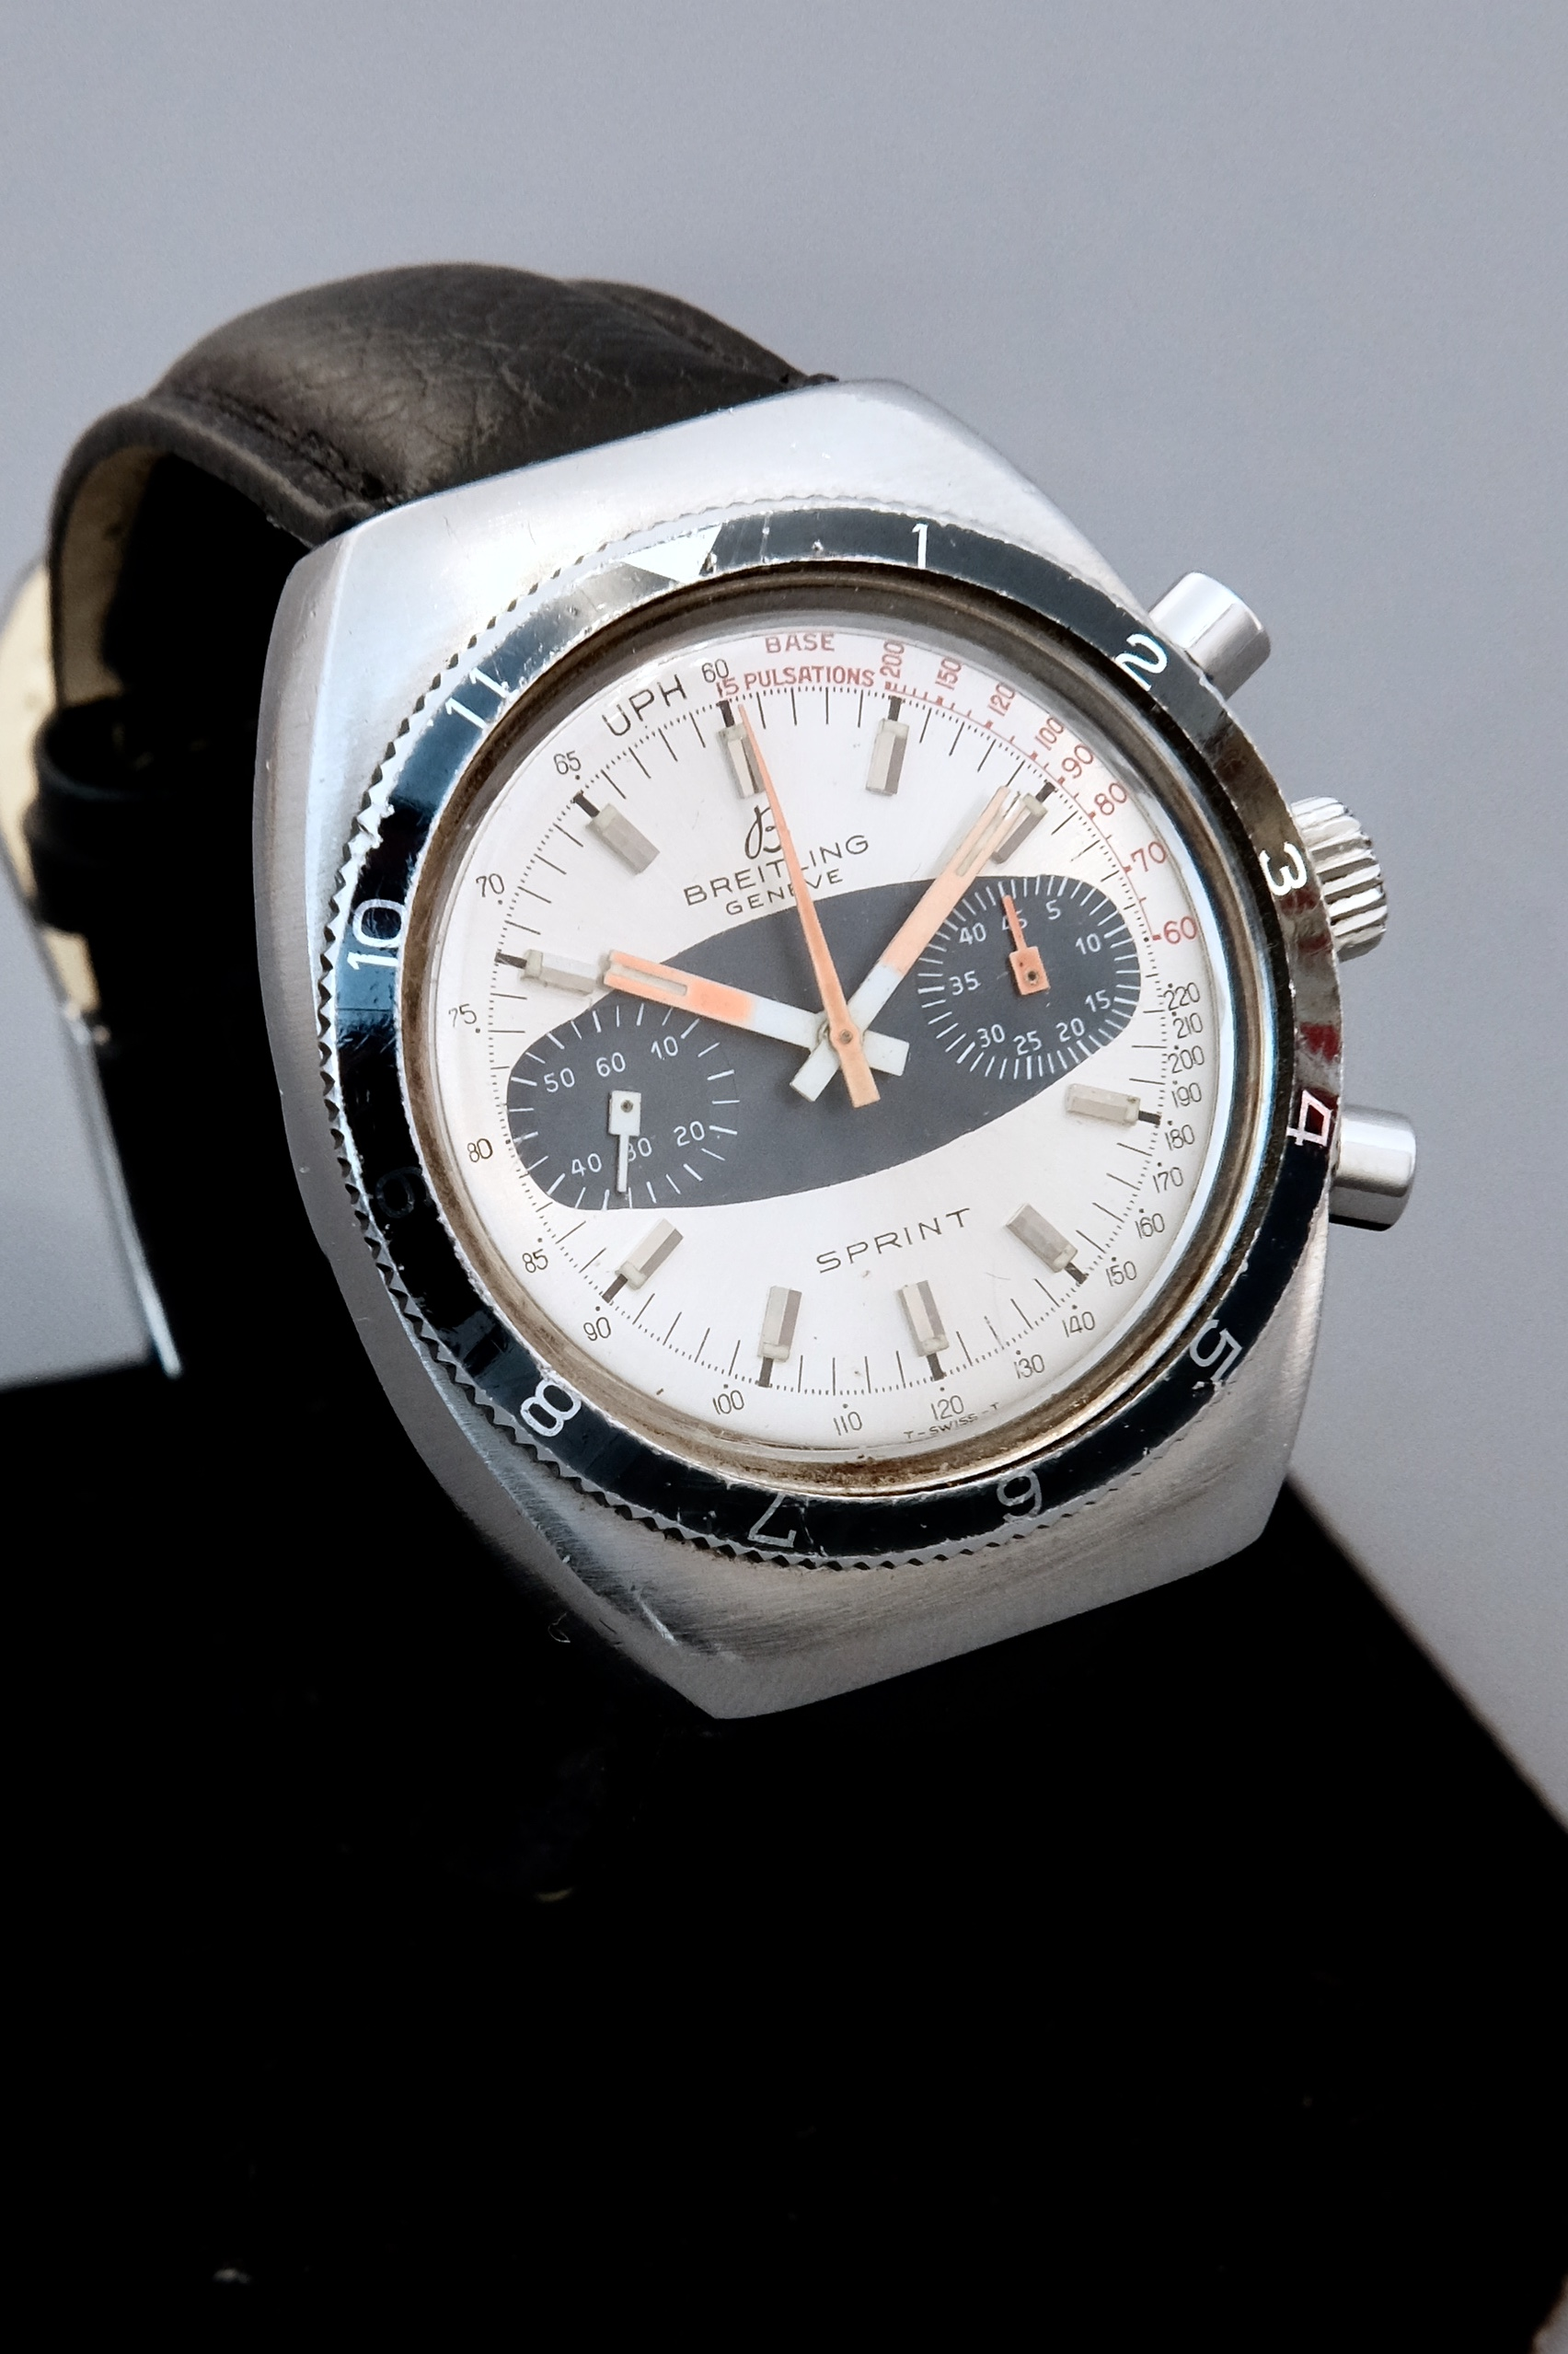 Brietling_Sprint_Pre-owned_Manual_Wrtistwatch